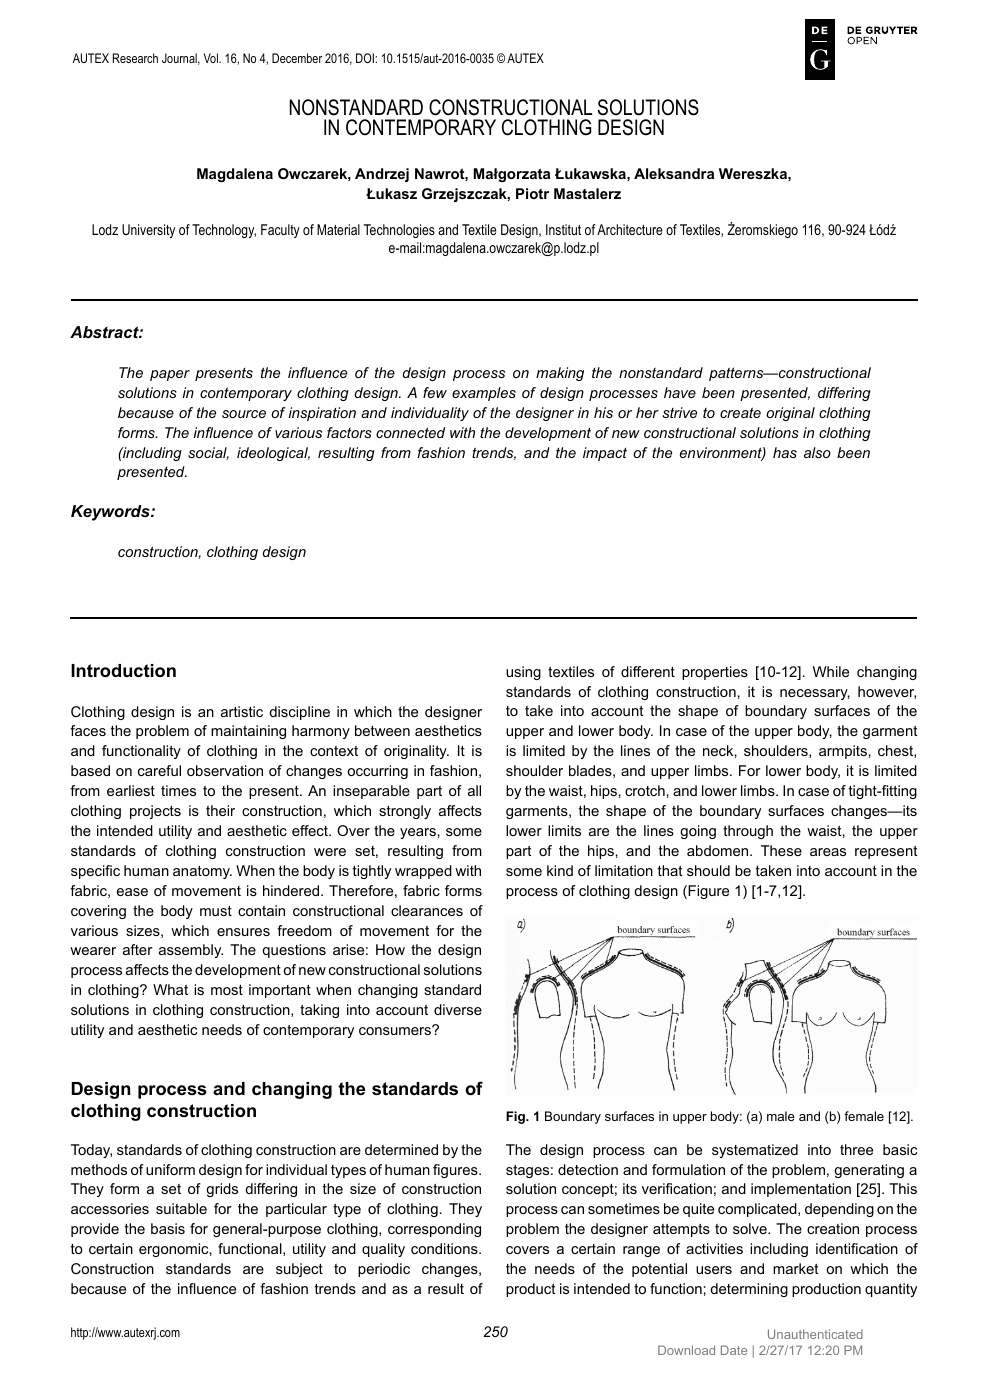 Nonstandard Constructional Solutions In Contemporary Clothing Design Topic Of Research Paper In Languages And Literature Download Scholarly Article Pdf And Read For Free On Cyberleninka Open Science Hub